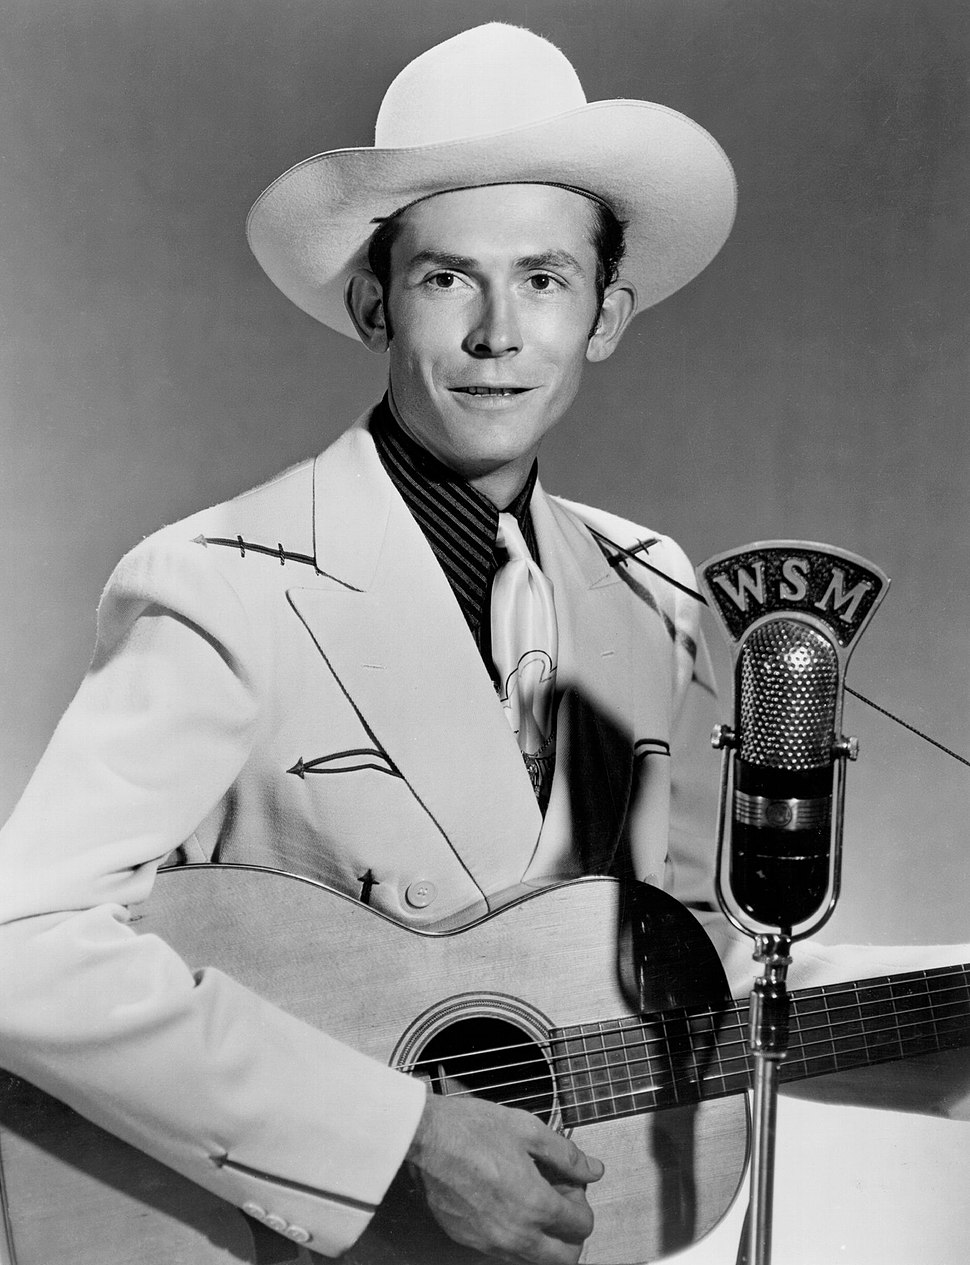 Hank Williams Promotional Photo